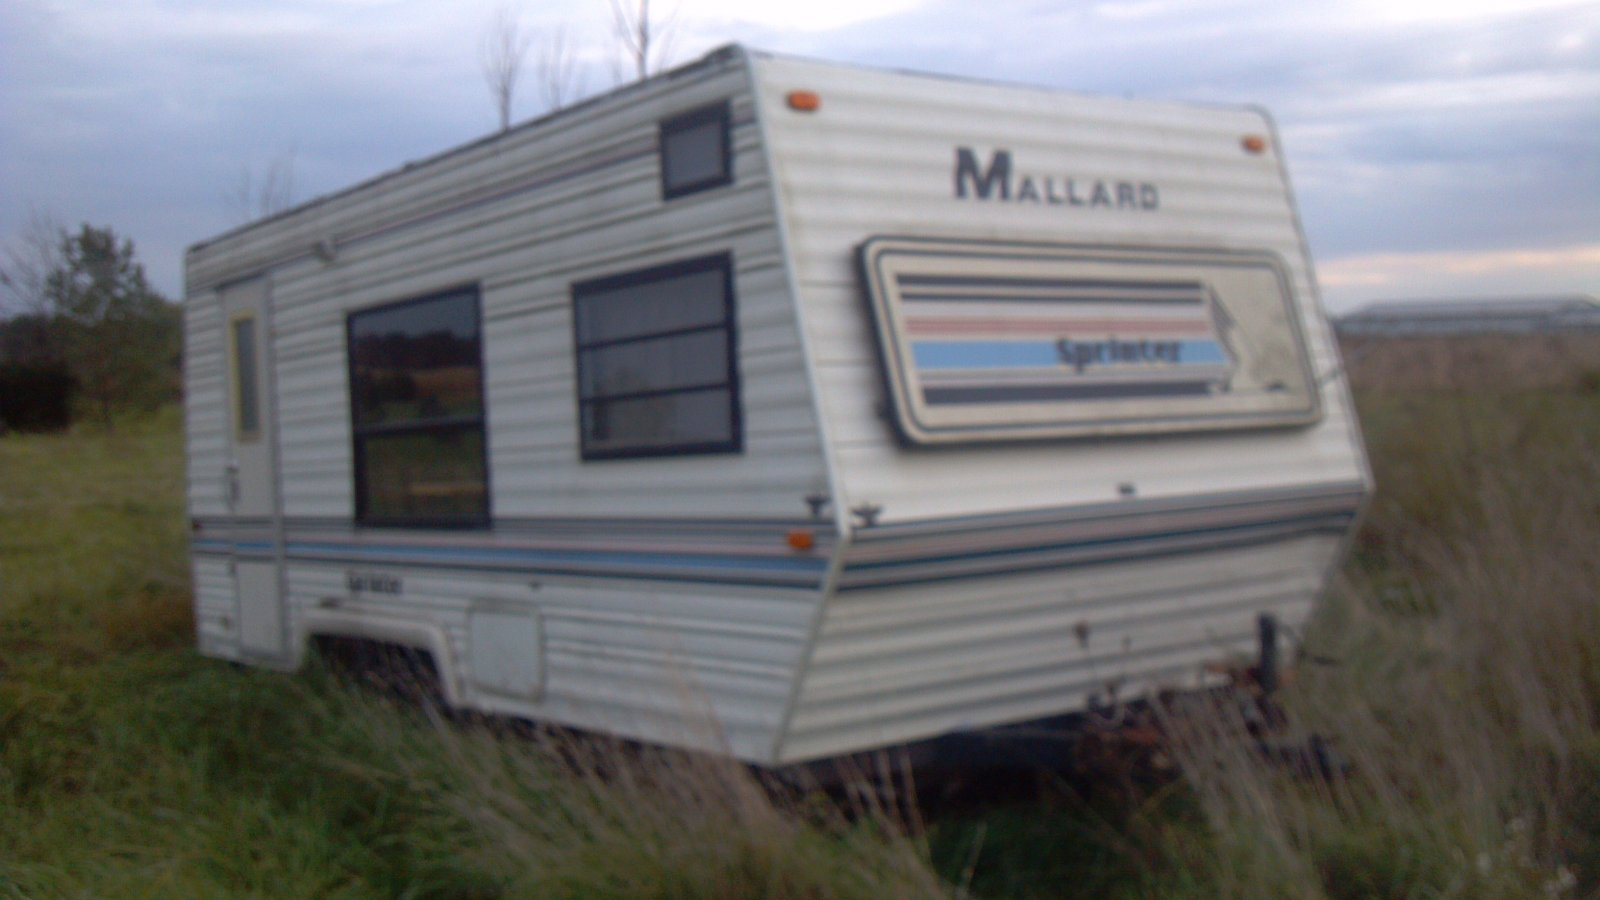 Need to find year and VIN # of Mallard Sprinter, Help - iRV2 Forums